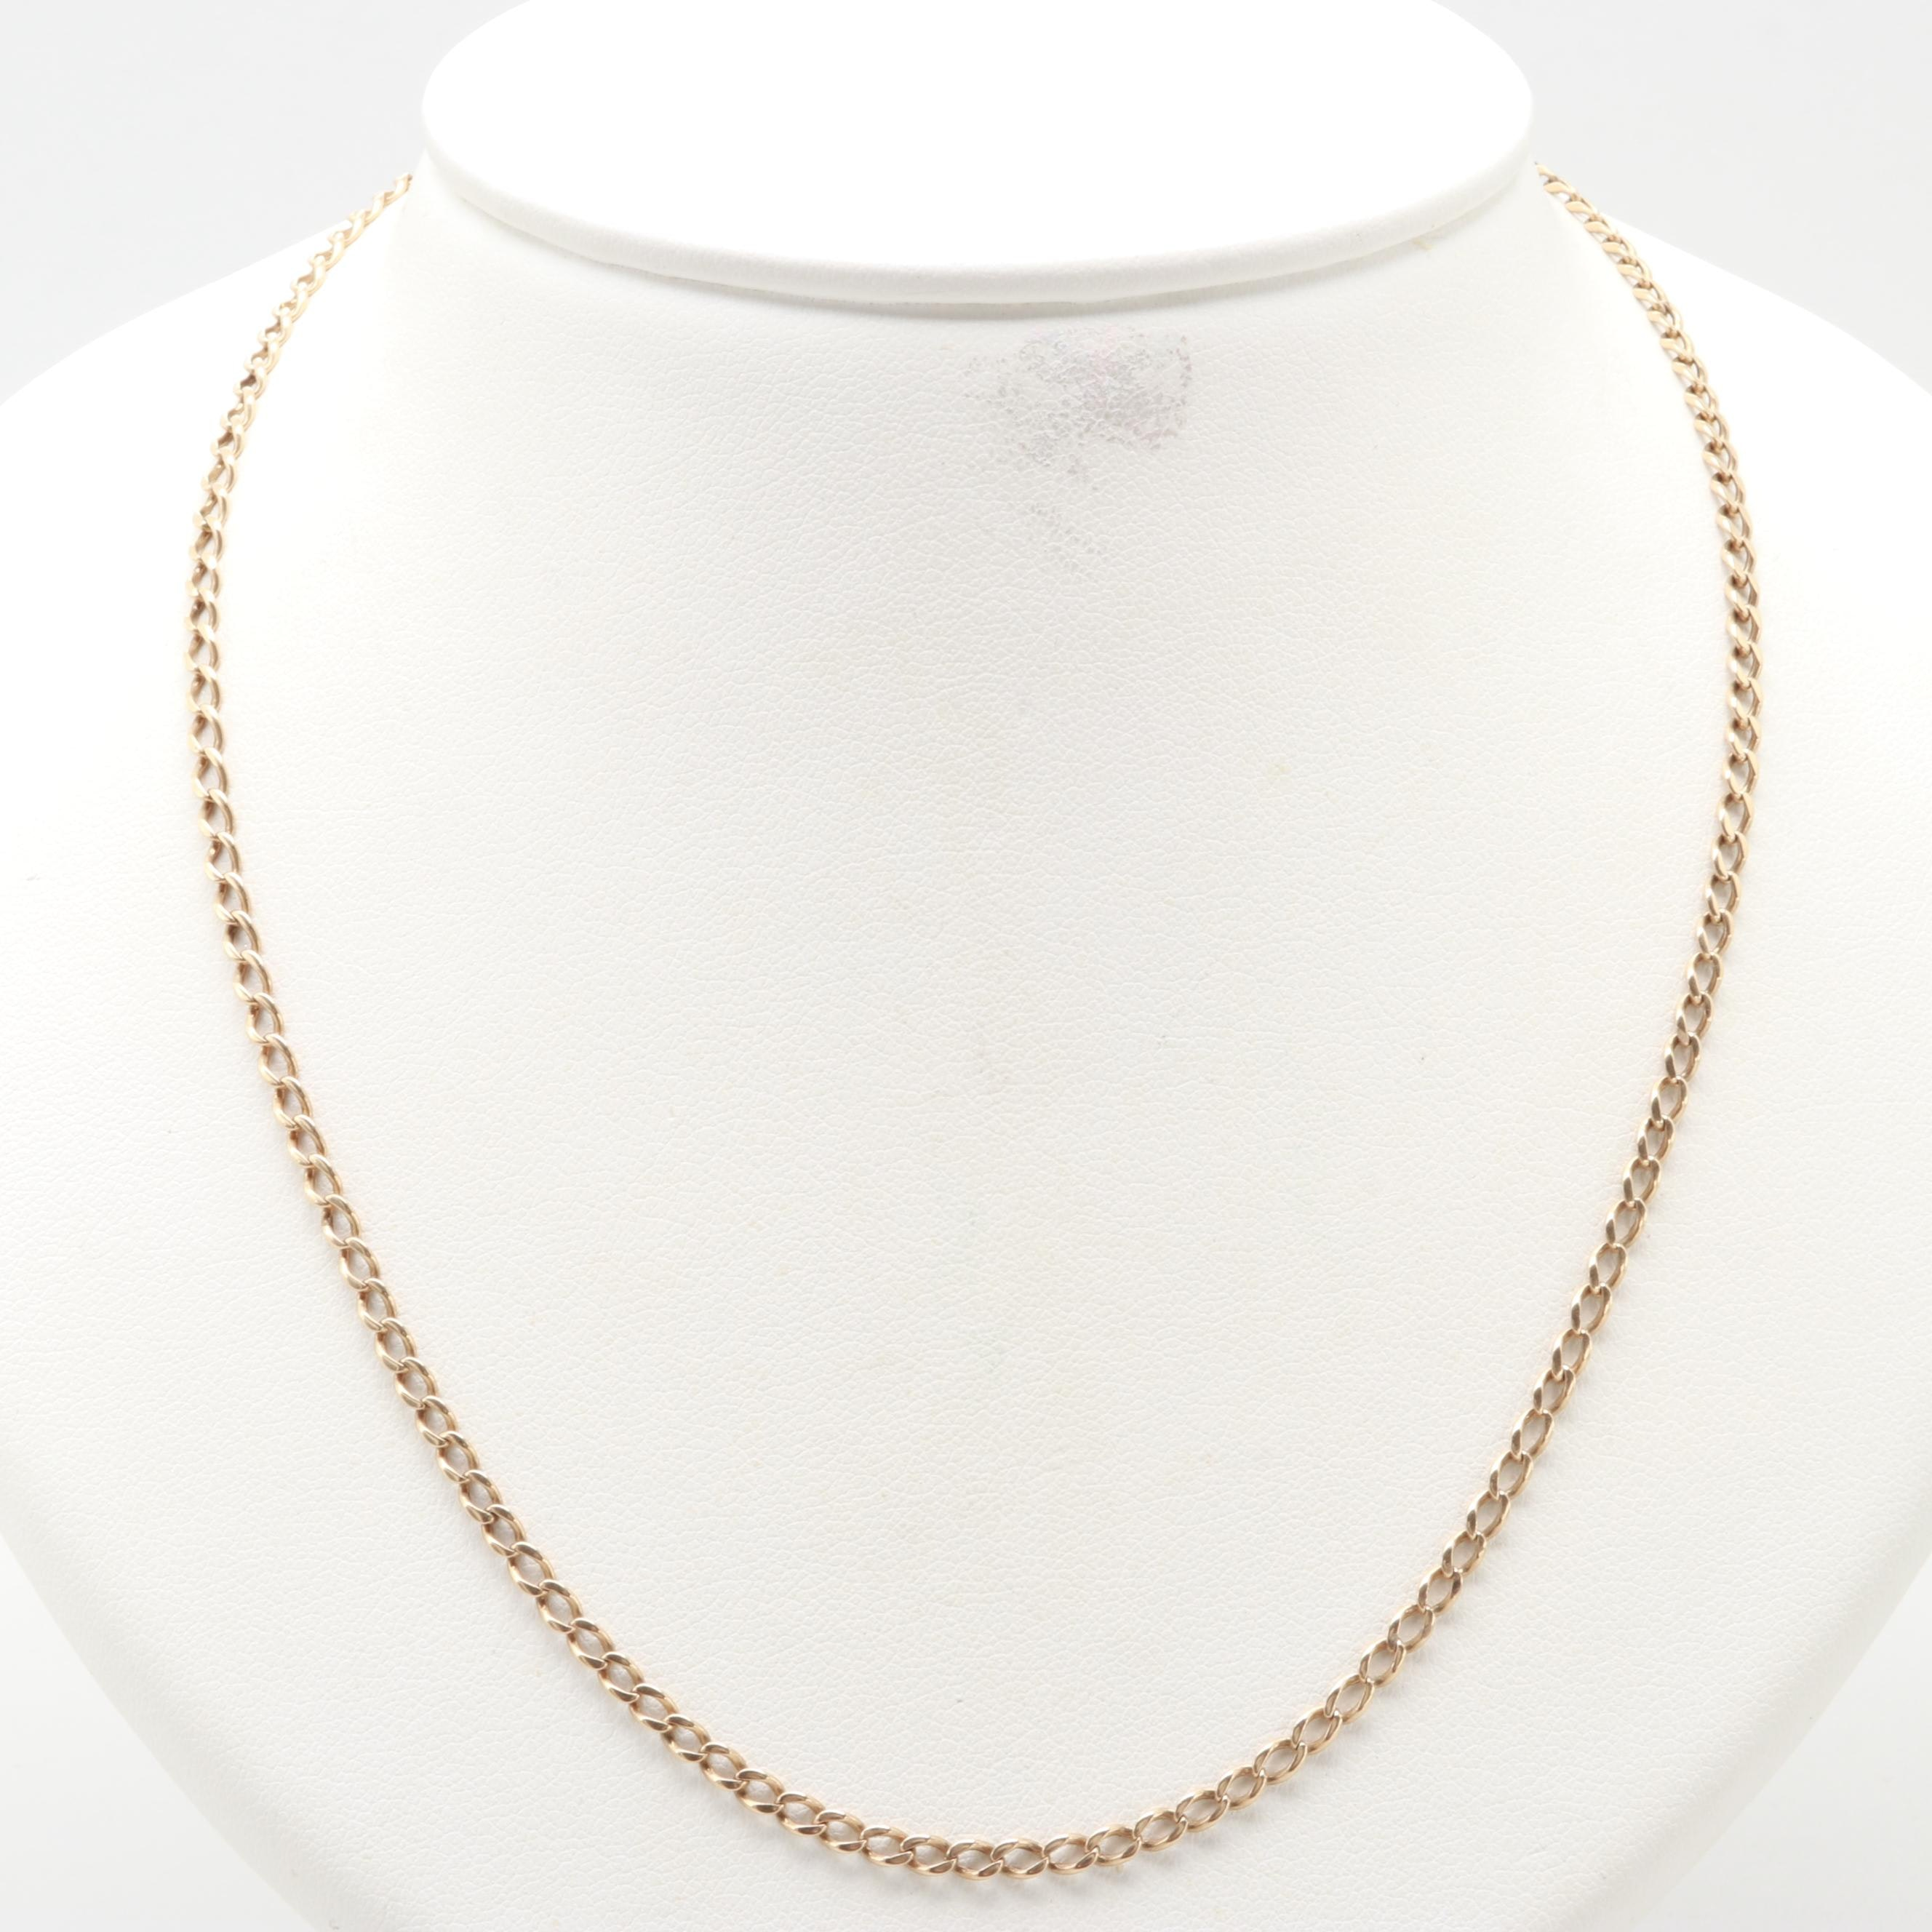 10K Yellow Gold Cable Chain Necklace